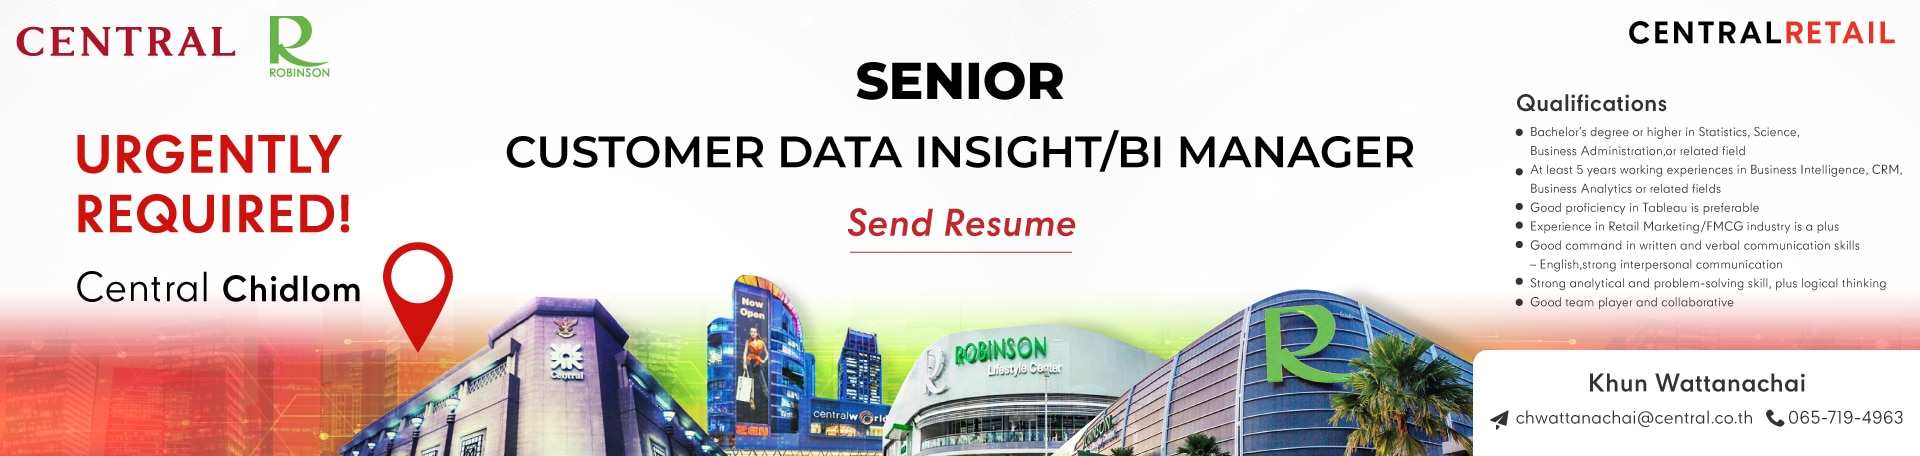 สมัครงาน Central analyst bi insight data